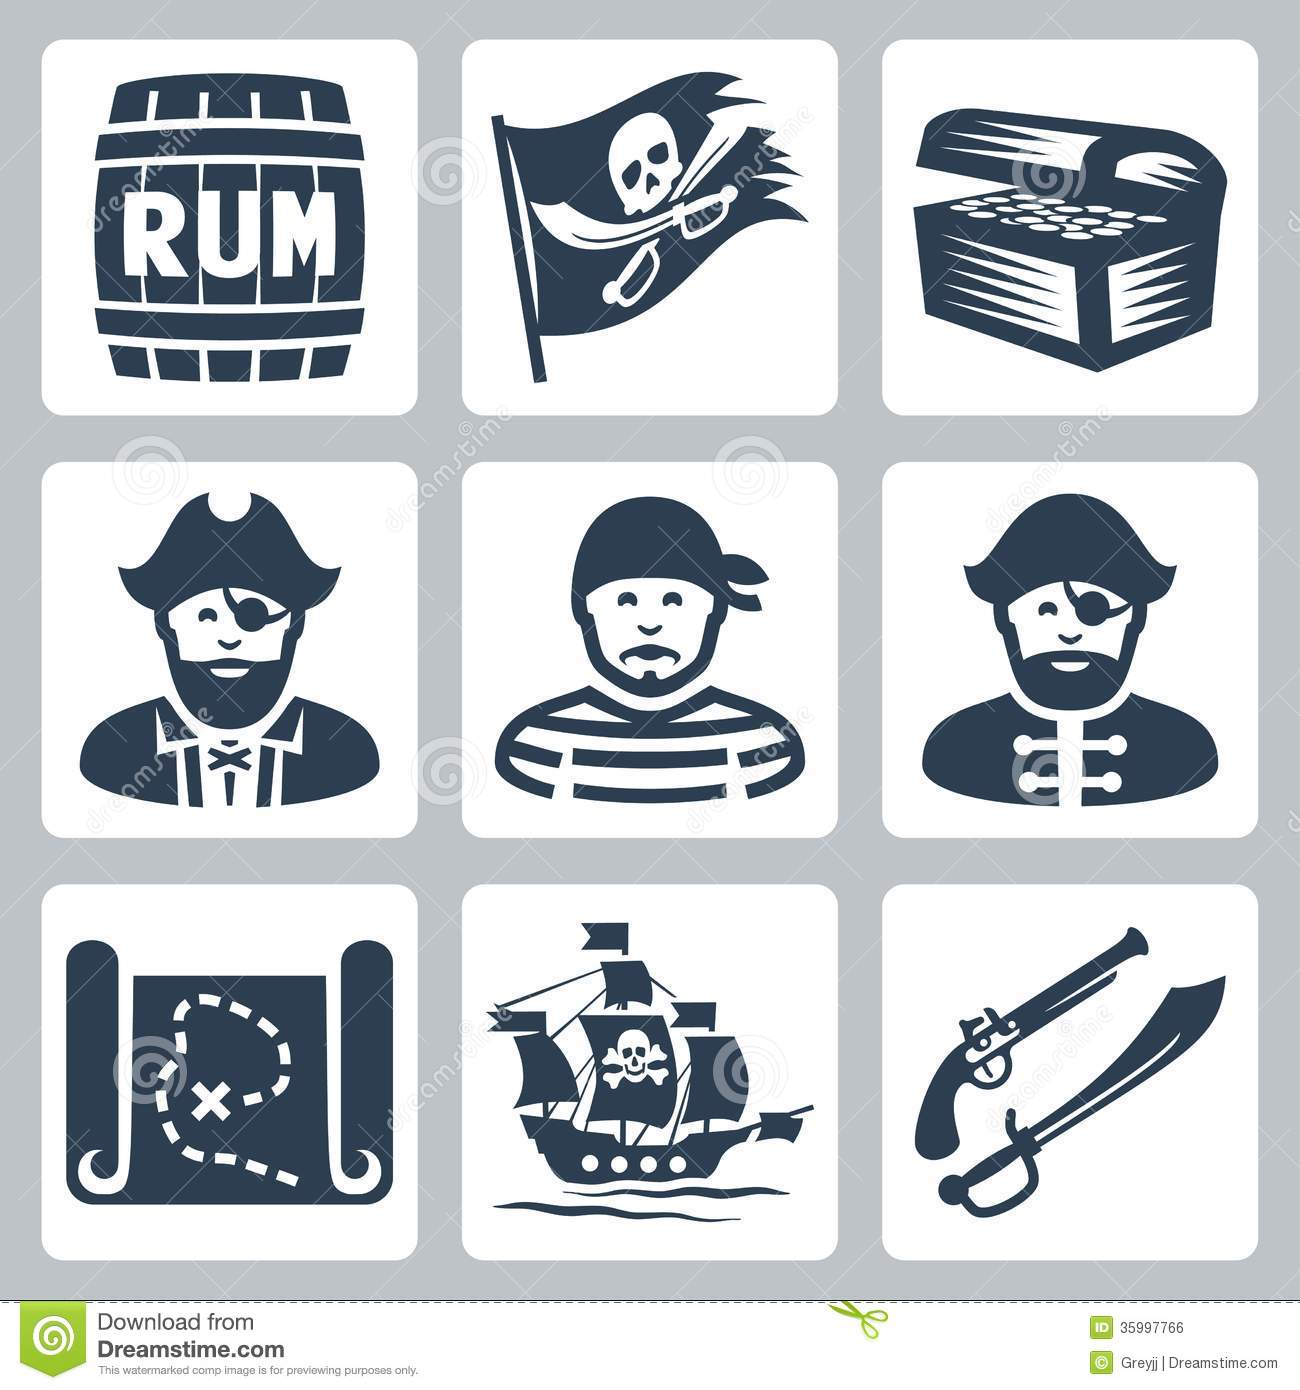 Royalty Free Stock Image Vector Pirates Piracy Icons Set Image35997766